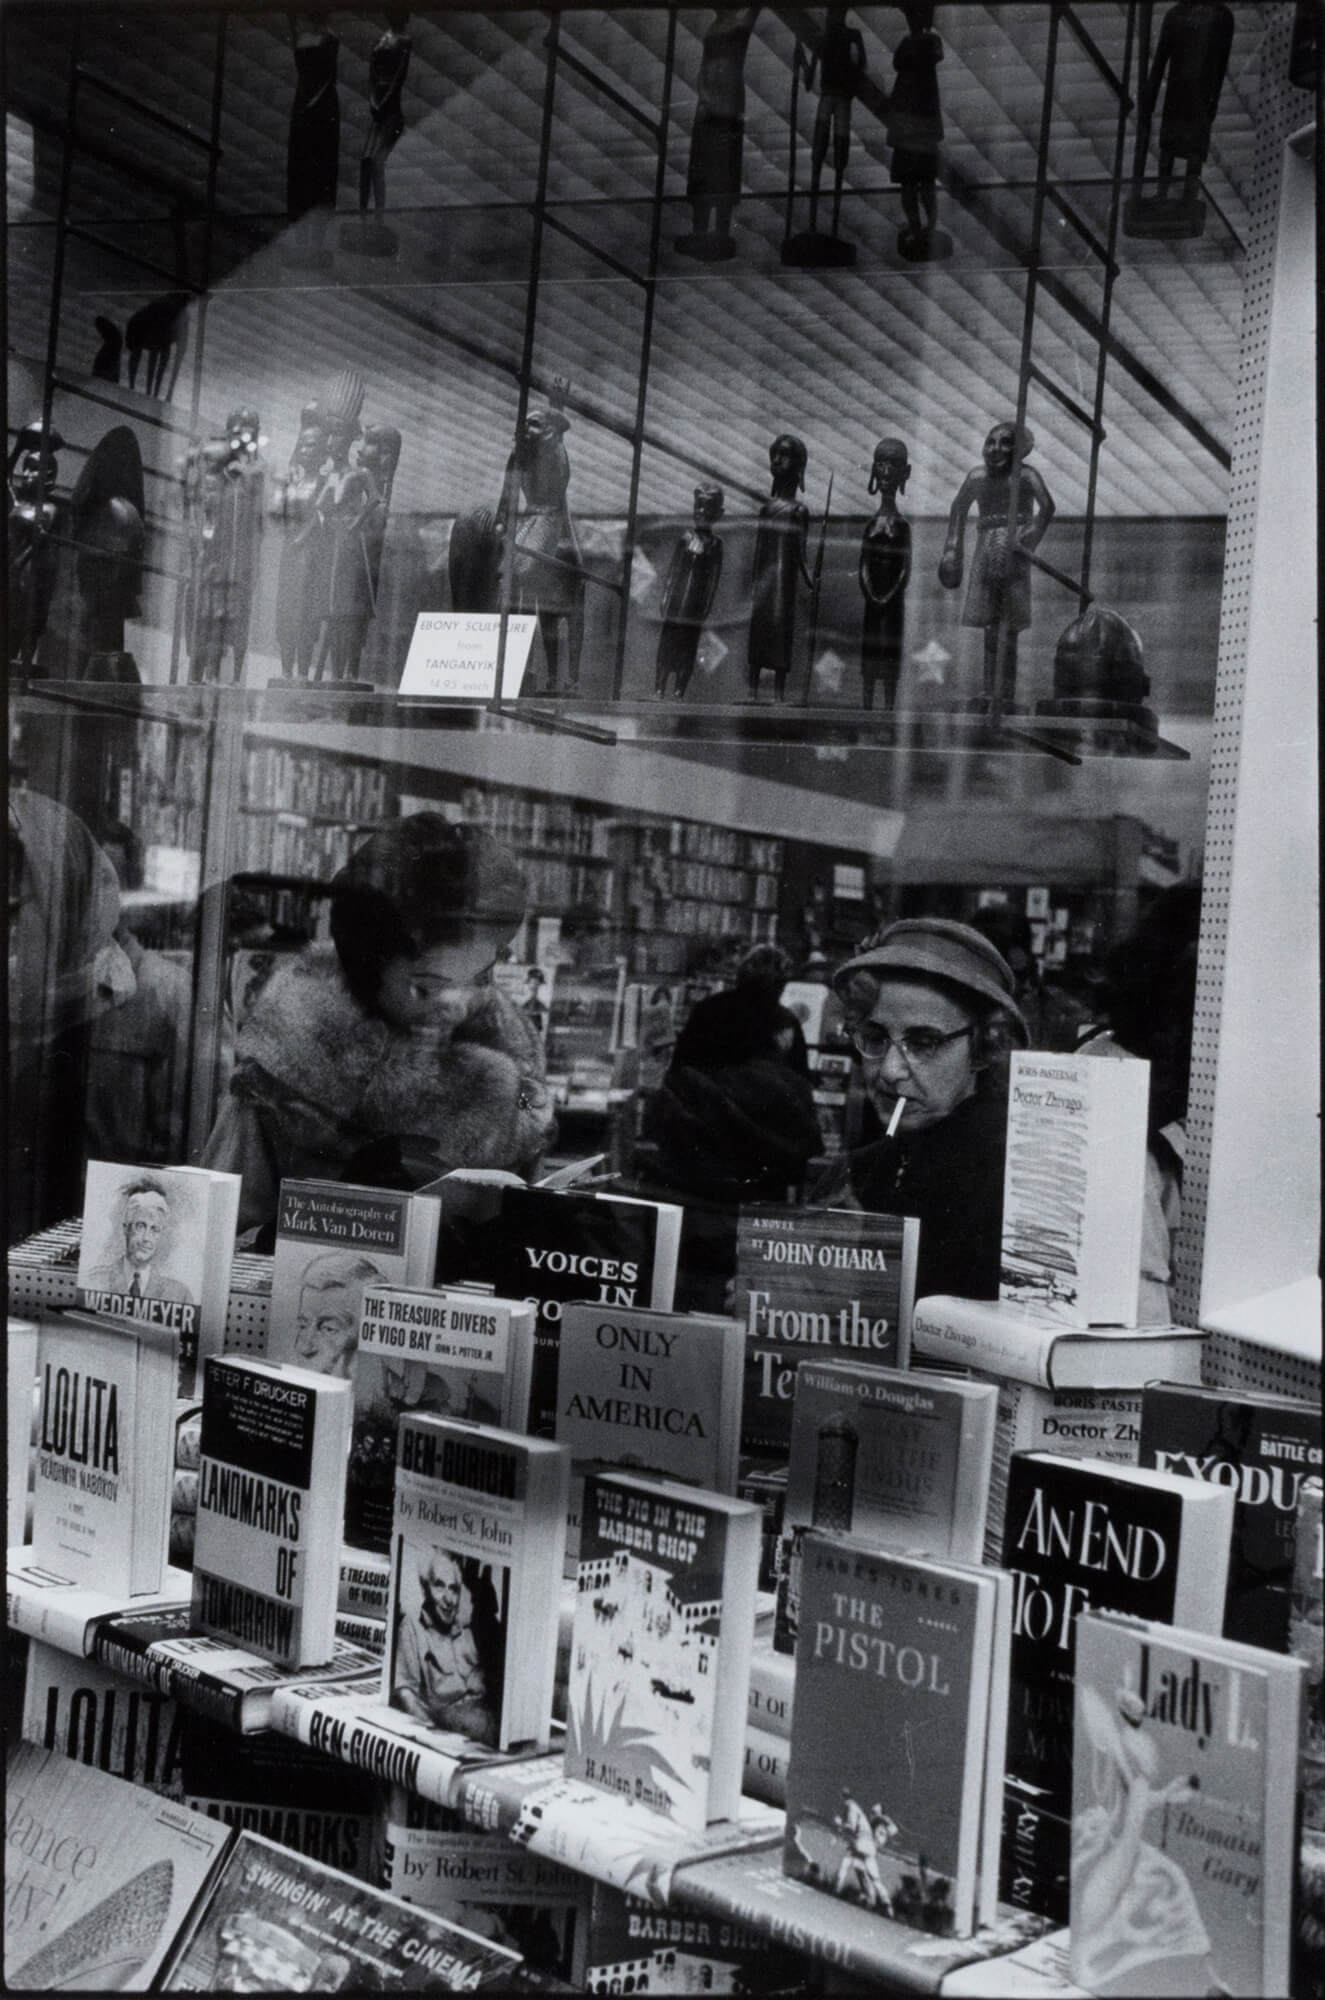 Bookstore on Fifth Avenue, New York City - Inge Morath | FFOTO